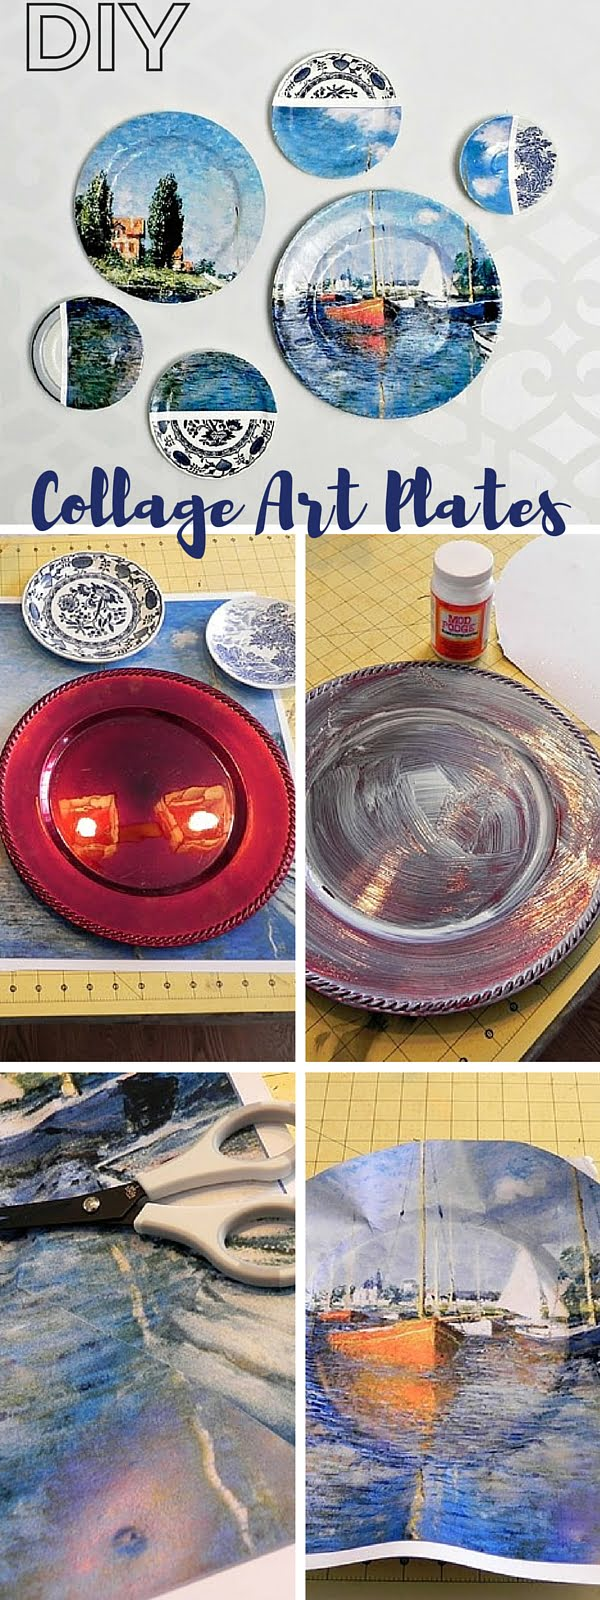 Check out the tutorial:   Collage Art Plates Knockoff